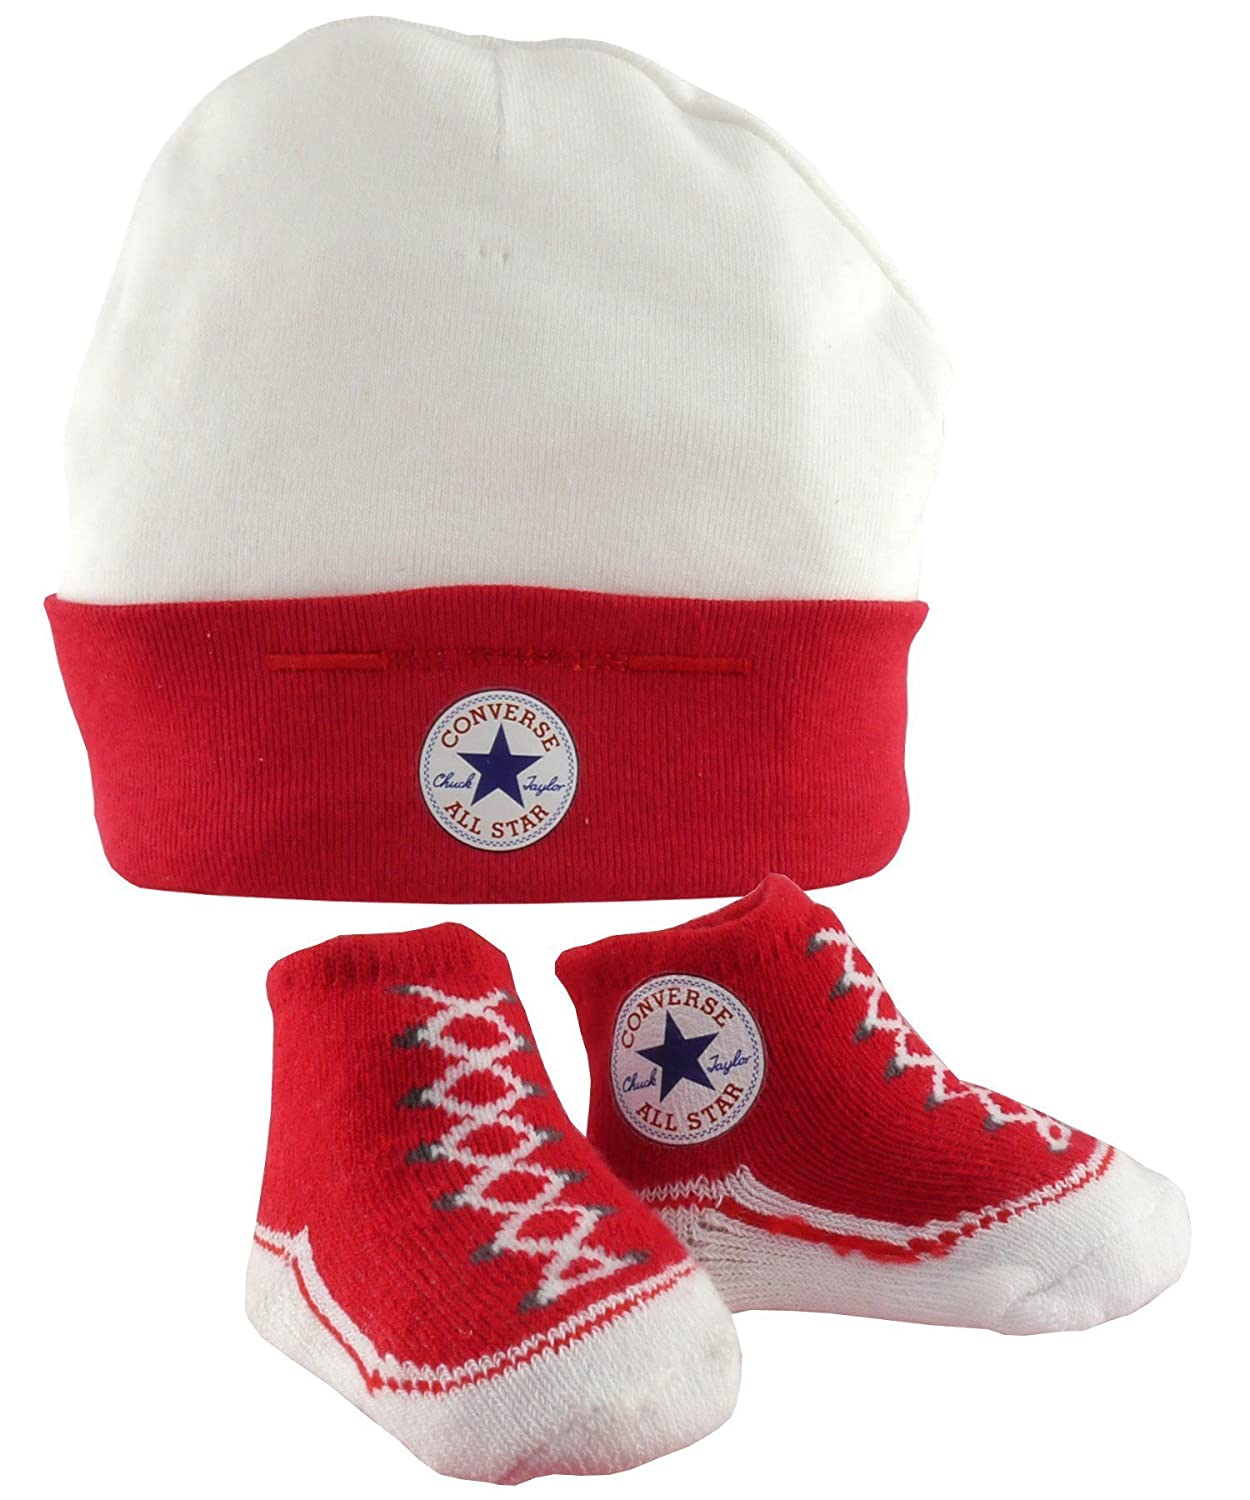 Converse Baby Hat   Booties Socks - Red  Amazon.co.uk  Clothing 3183b549676d